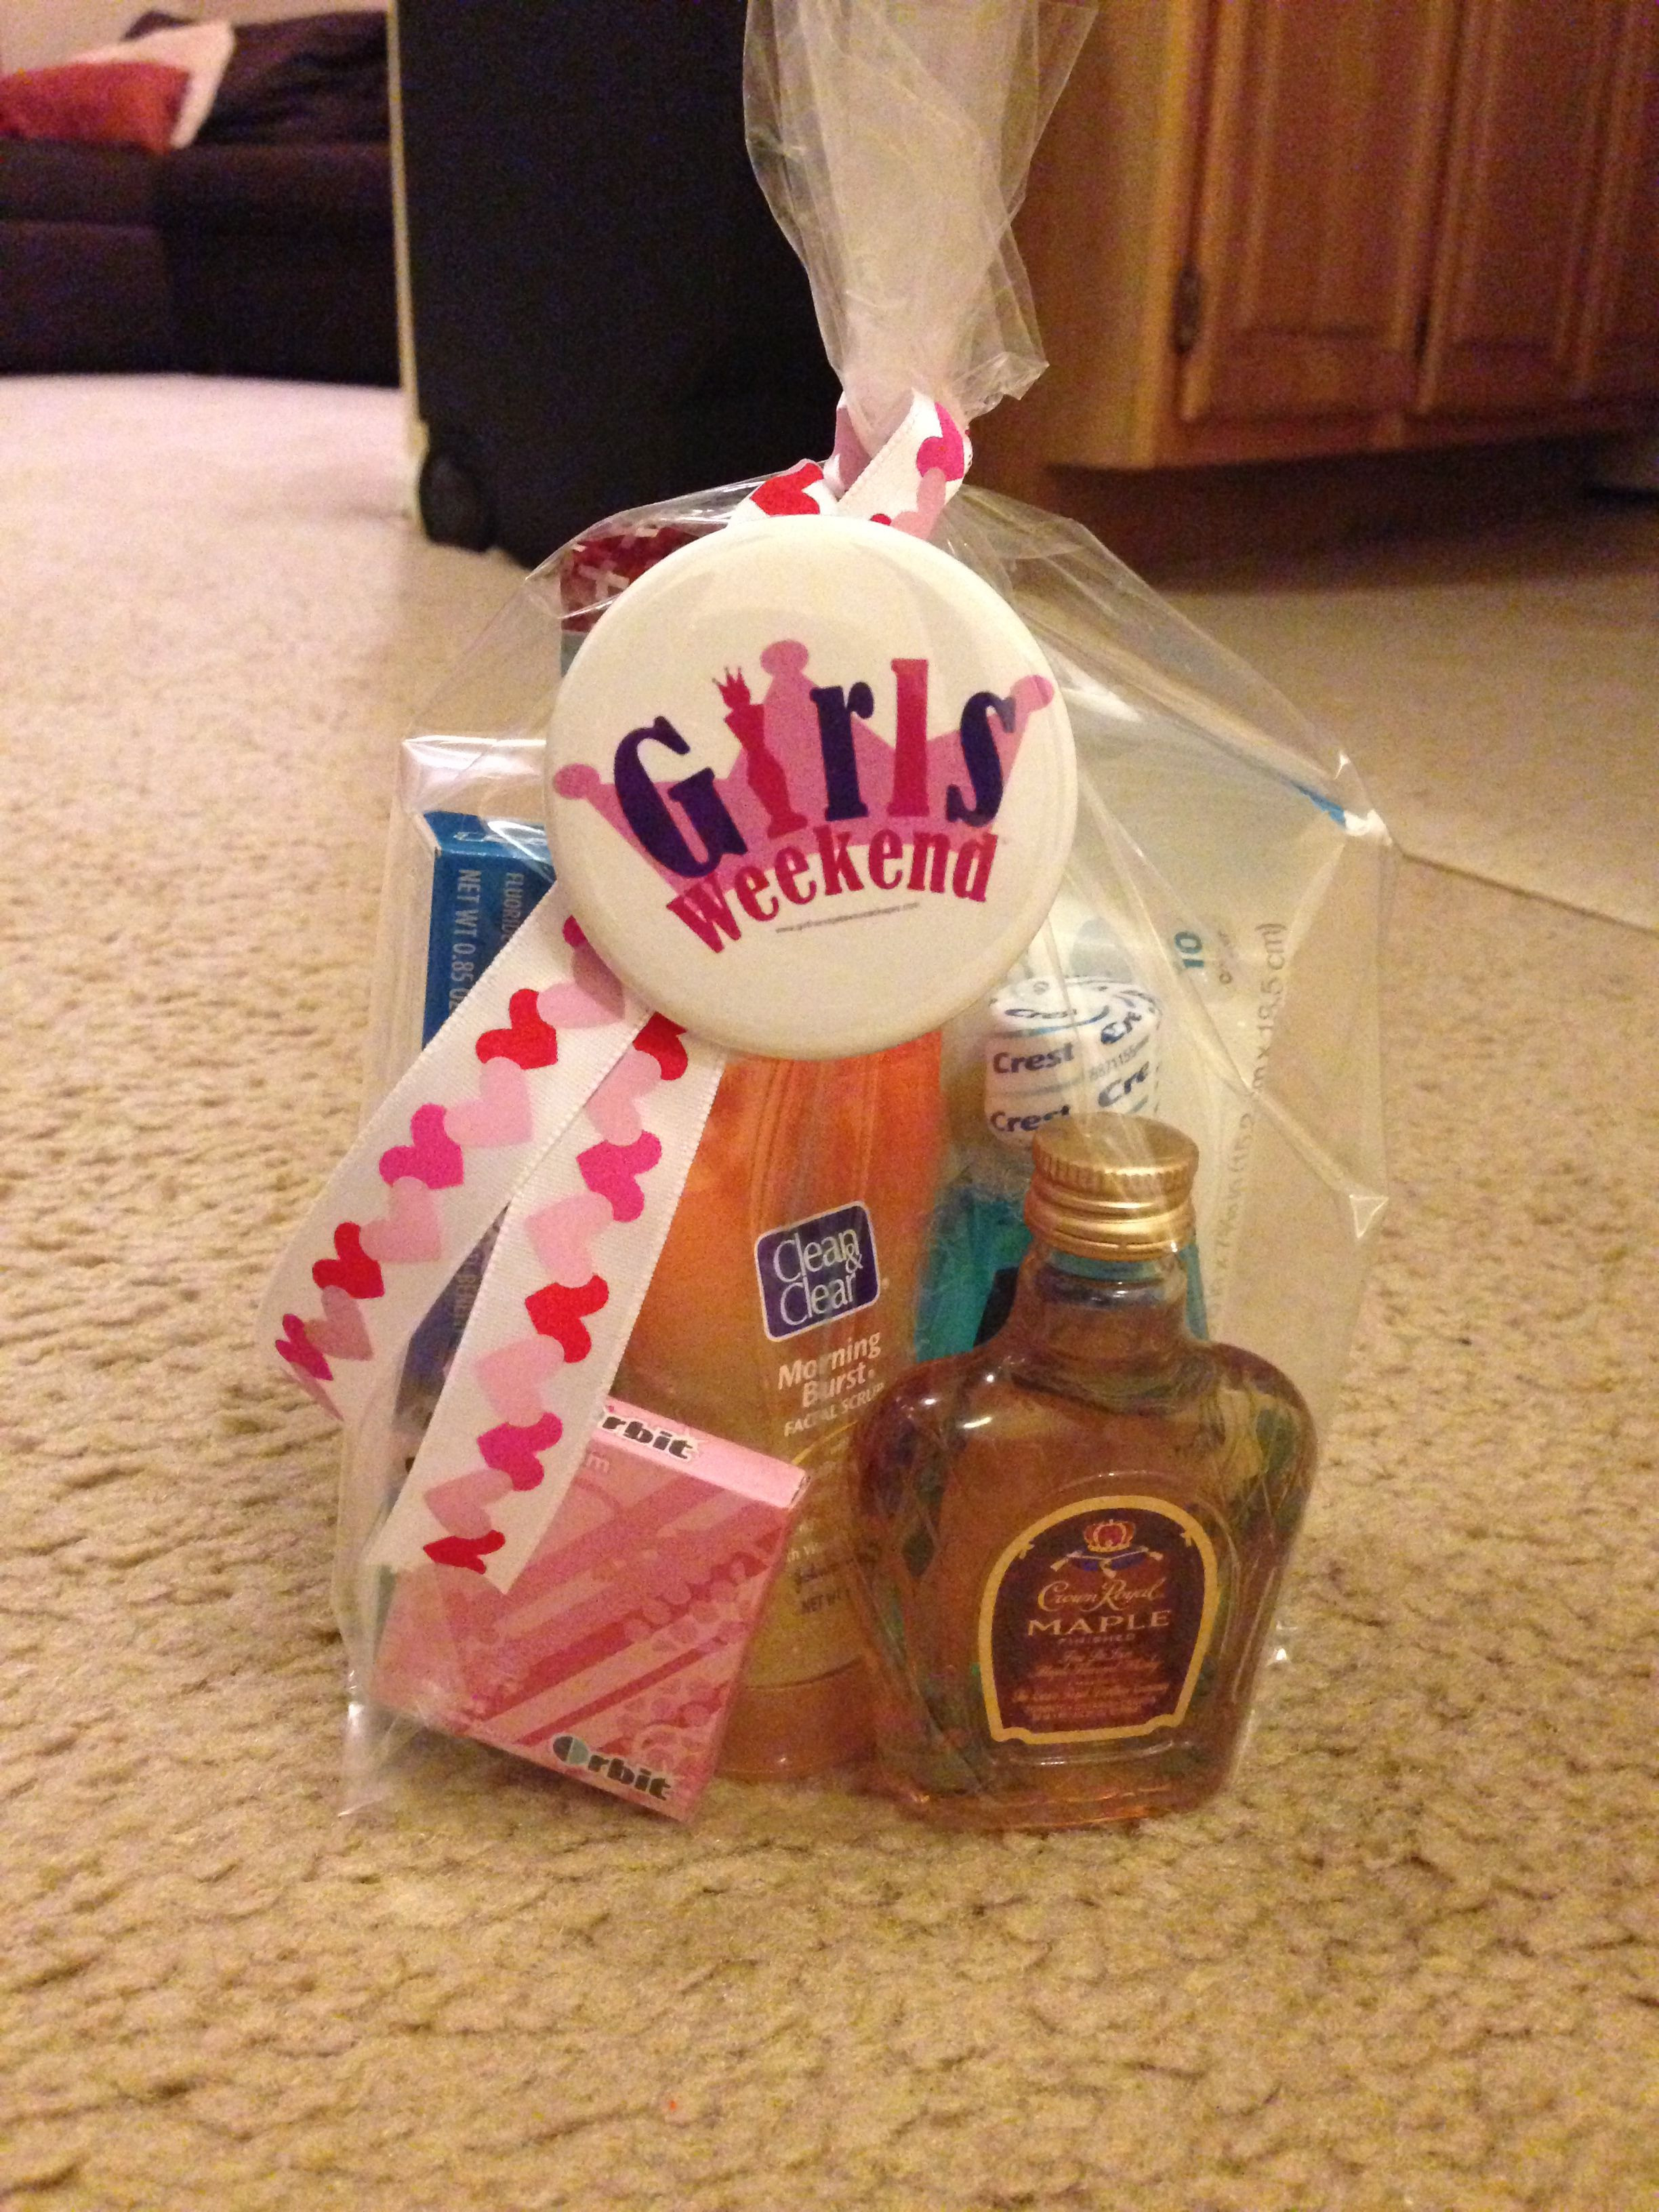 Girls Weekend Trip Little Goodie Bag Gifts Birthday Vegas